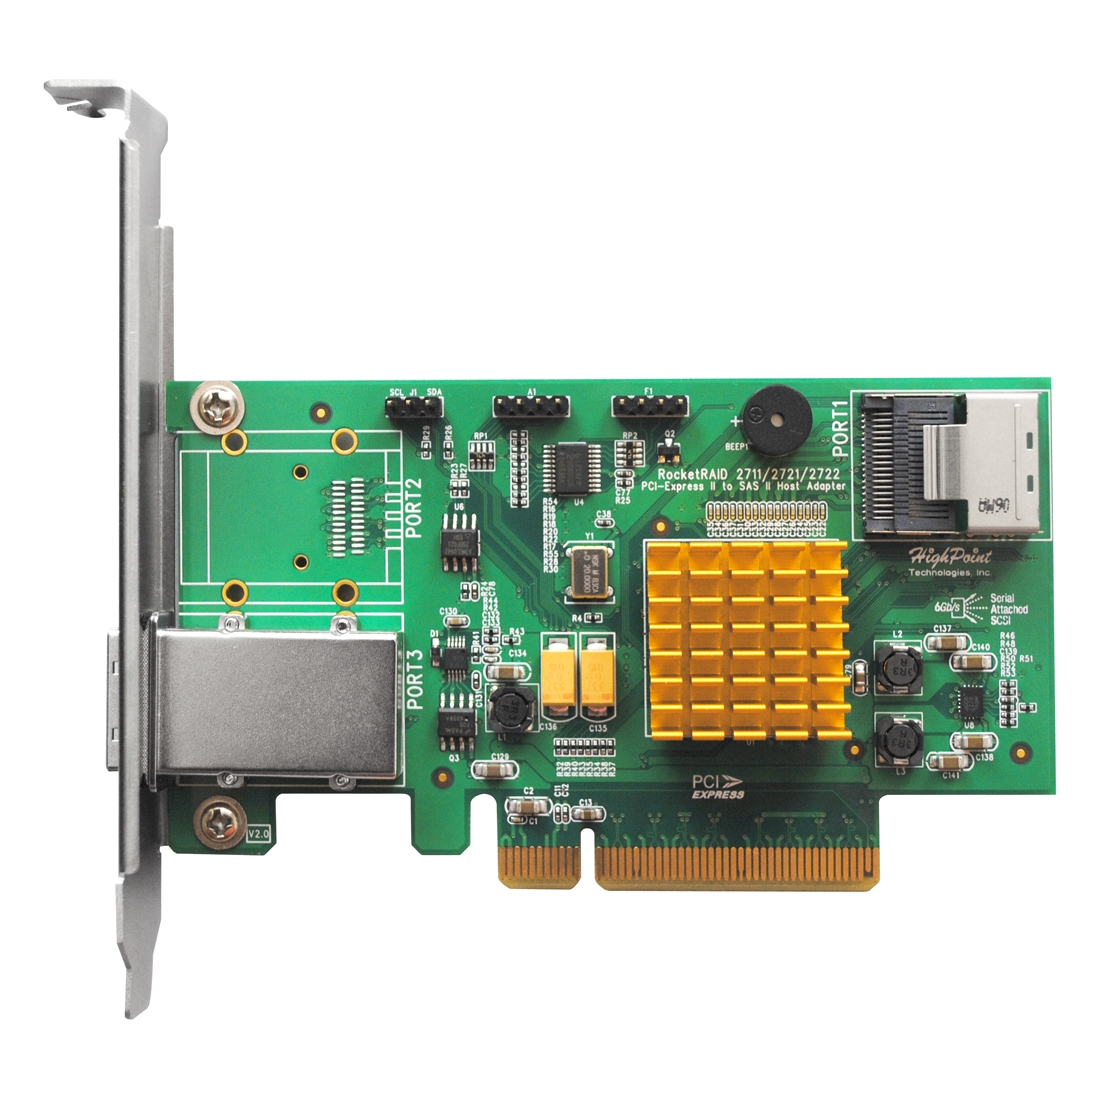 Highpoint Rocketraid 2721 Sas Raid Controller - Serial Ata/600, Serial Attached Scsi - Pci Express 2.0 X8 - Plug-in Card 0, 1, 5, 10, 50, Jbod Raid Level (rocketraid2721)